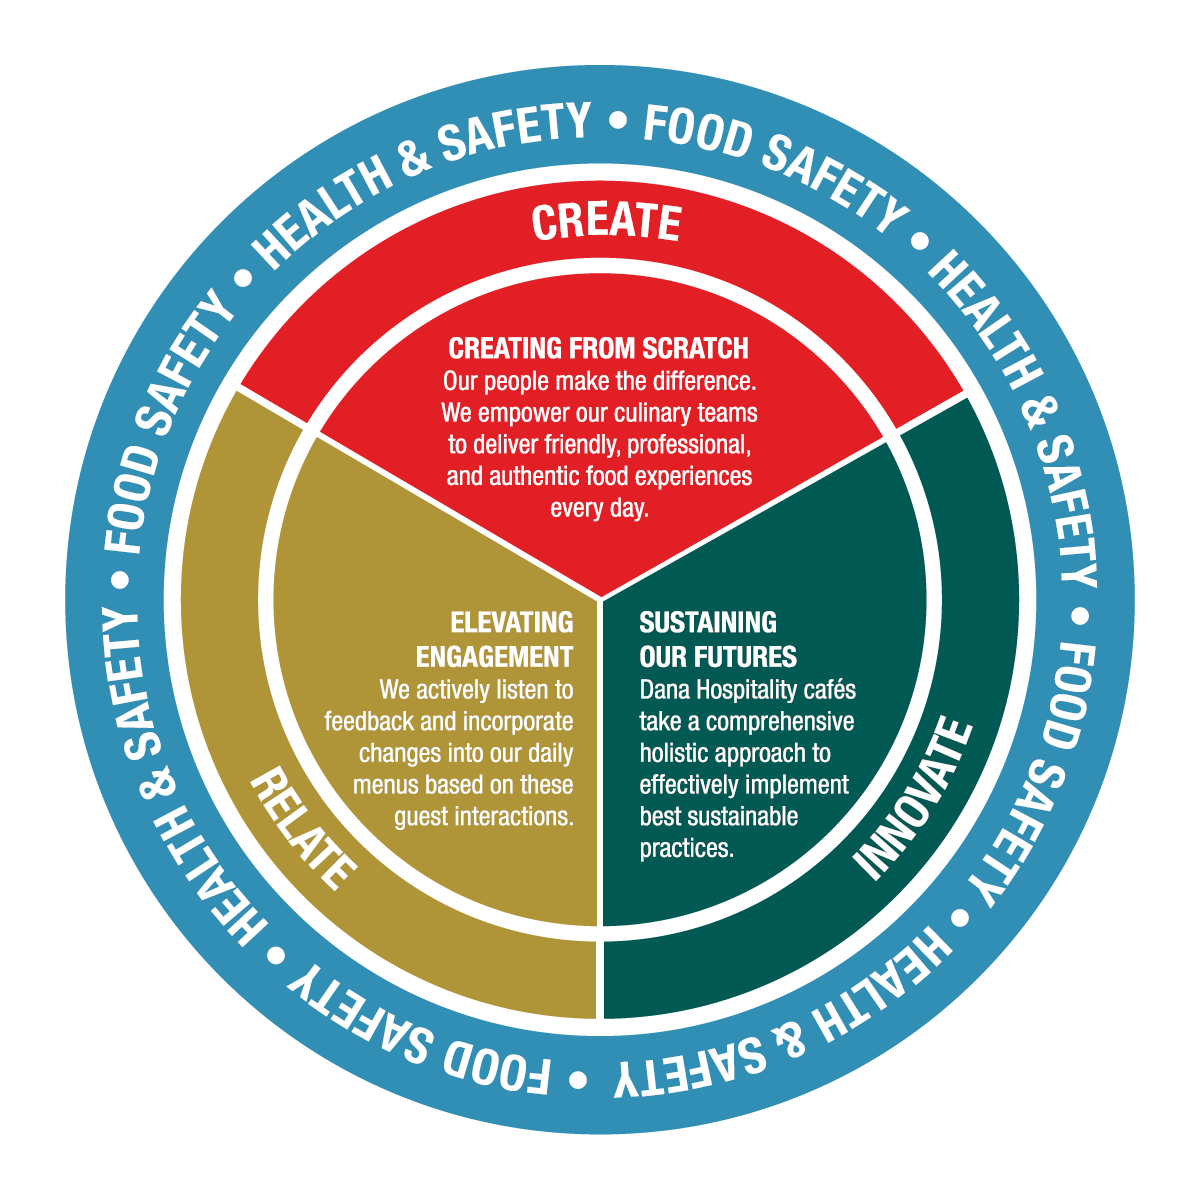 Food Safety. Health & Safety Diagram.